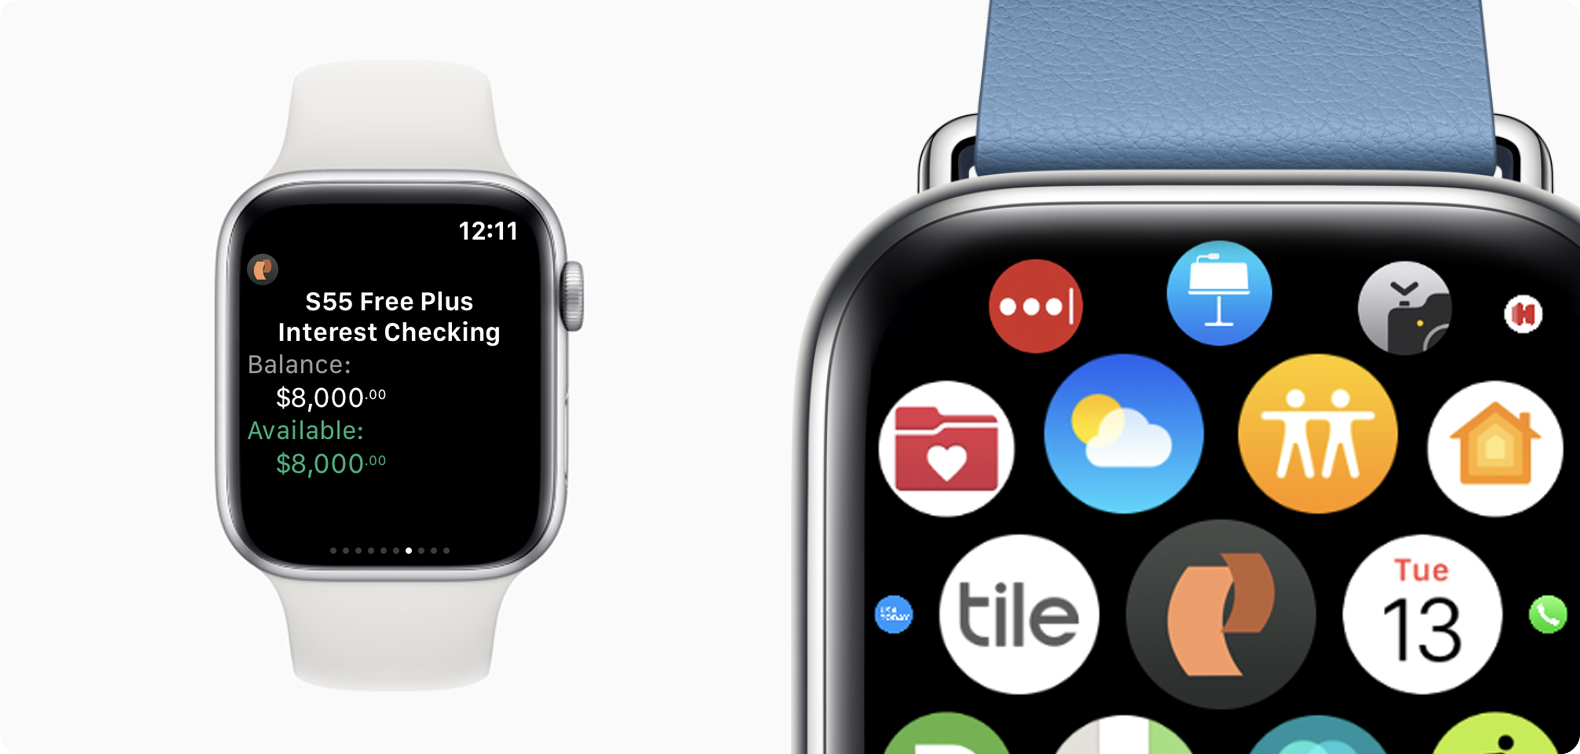 ms-9-apple-watch.jpg